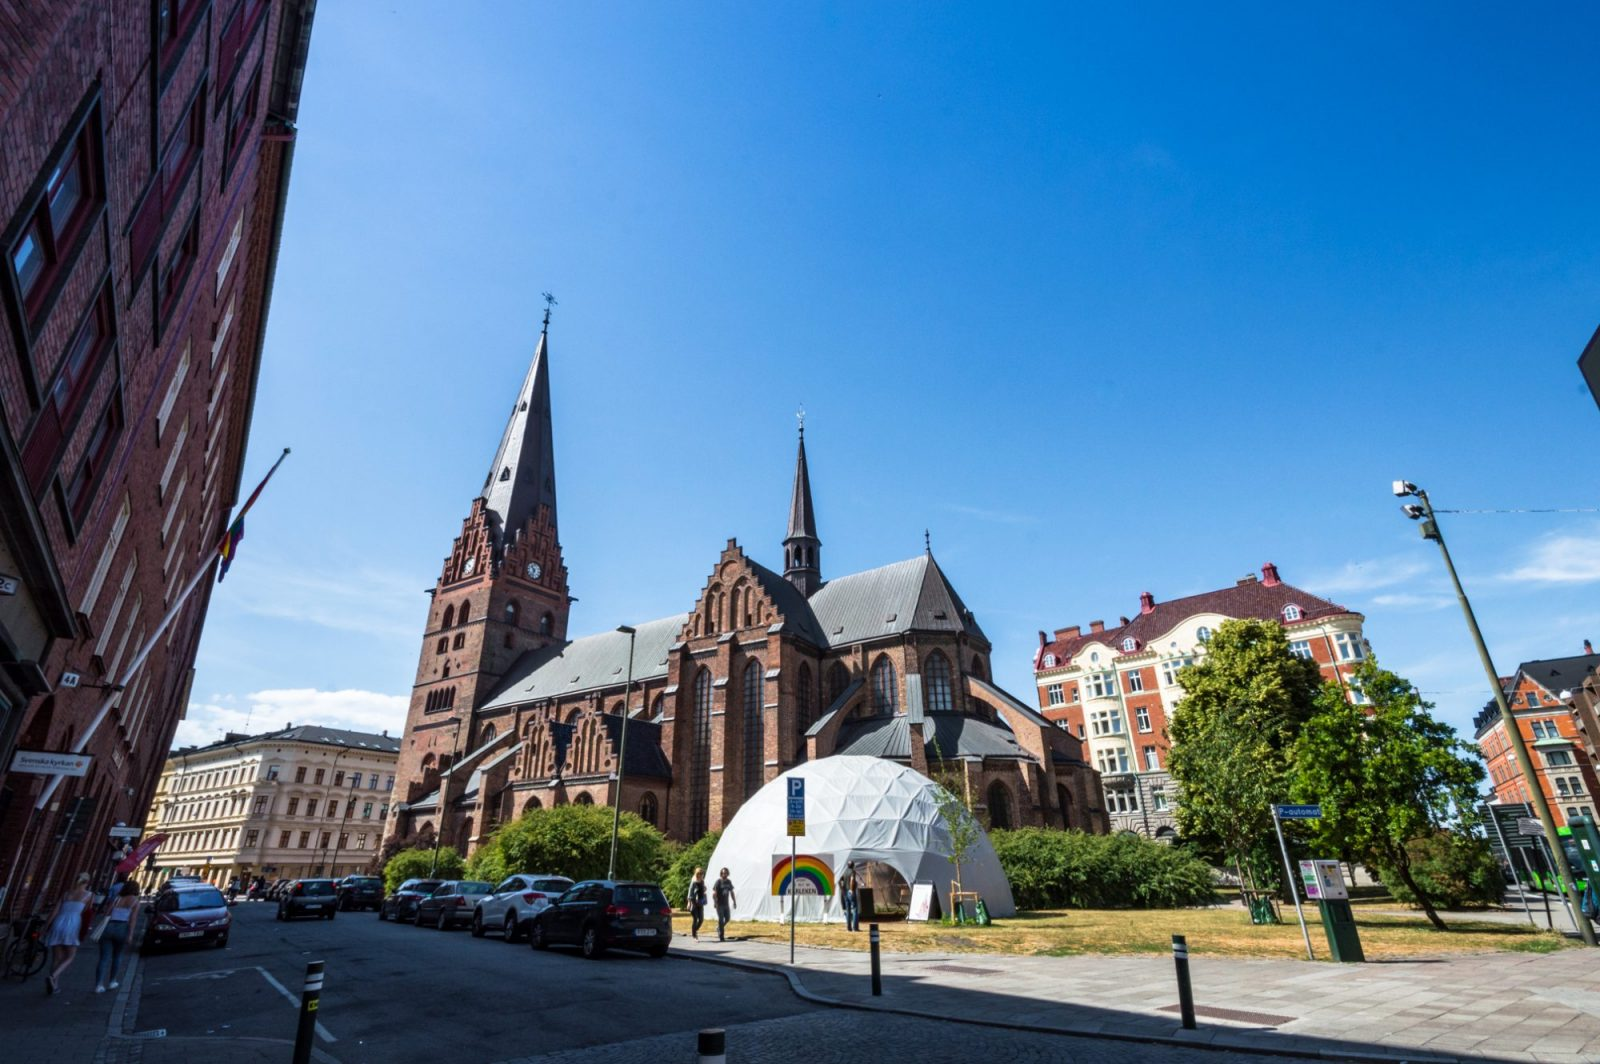 St Peter's Church in Malmo